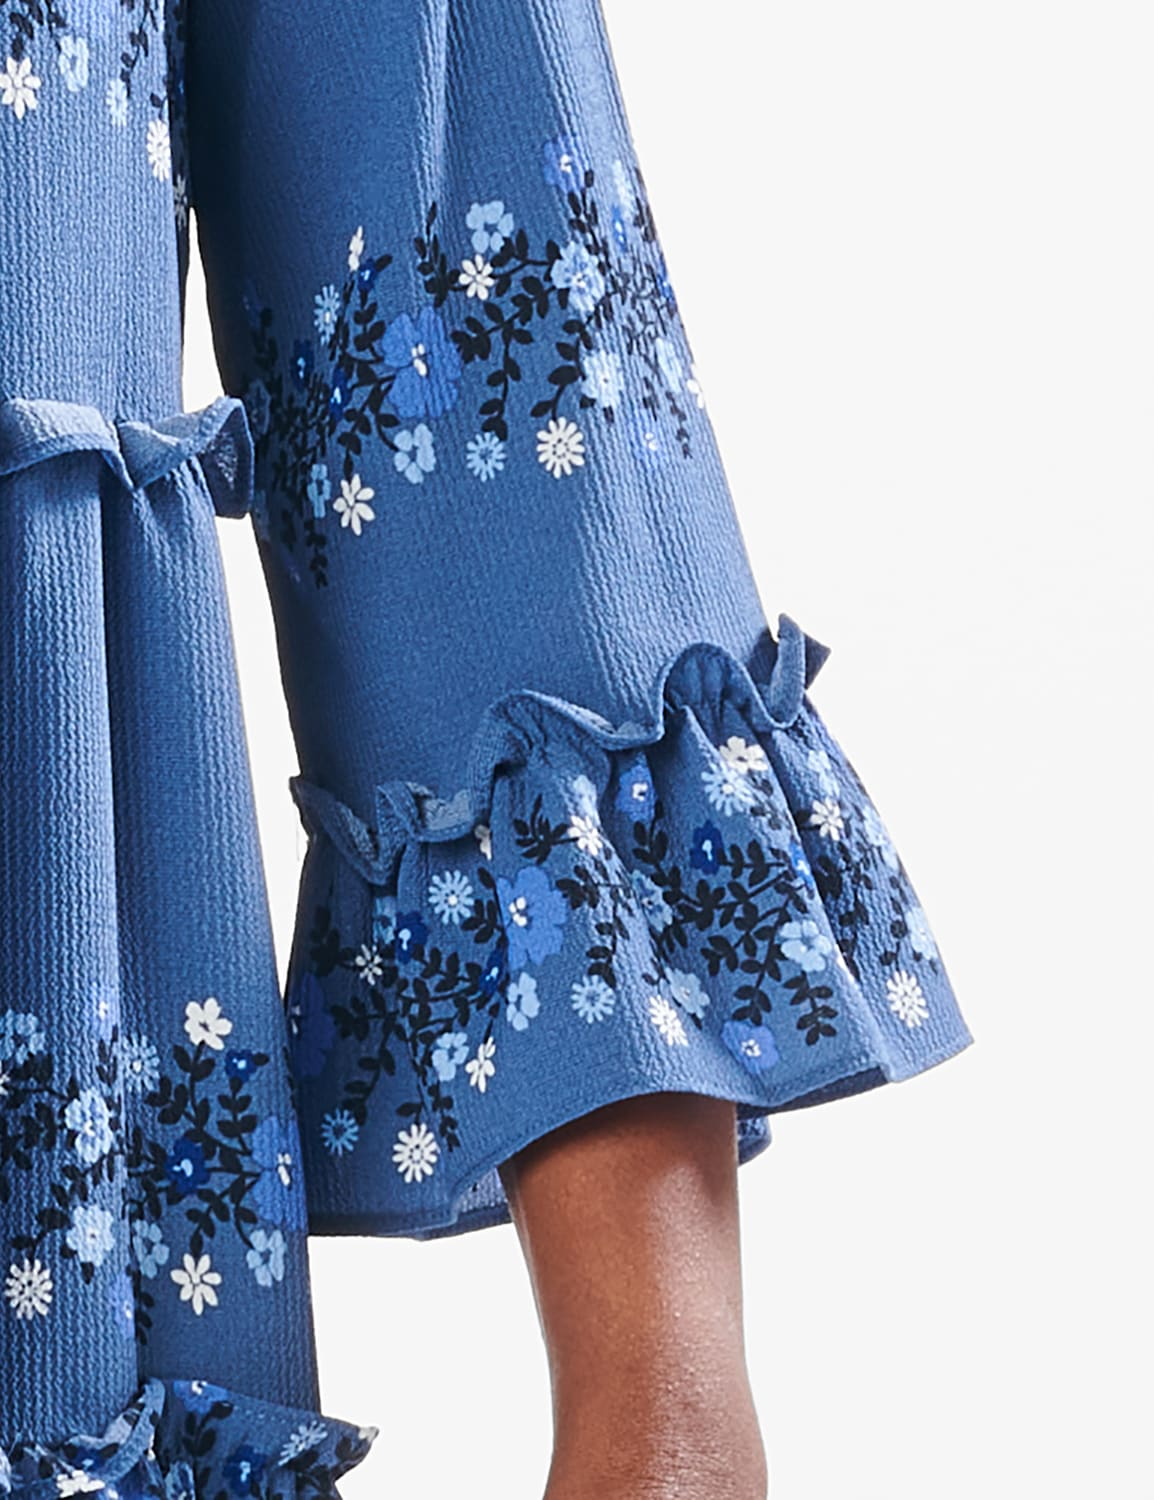 Ditsy Floral Baby Doll Dress - Denim Blue - Detail